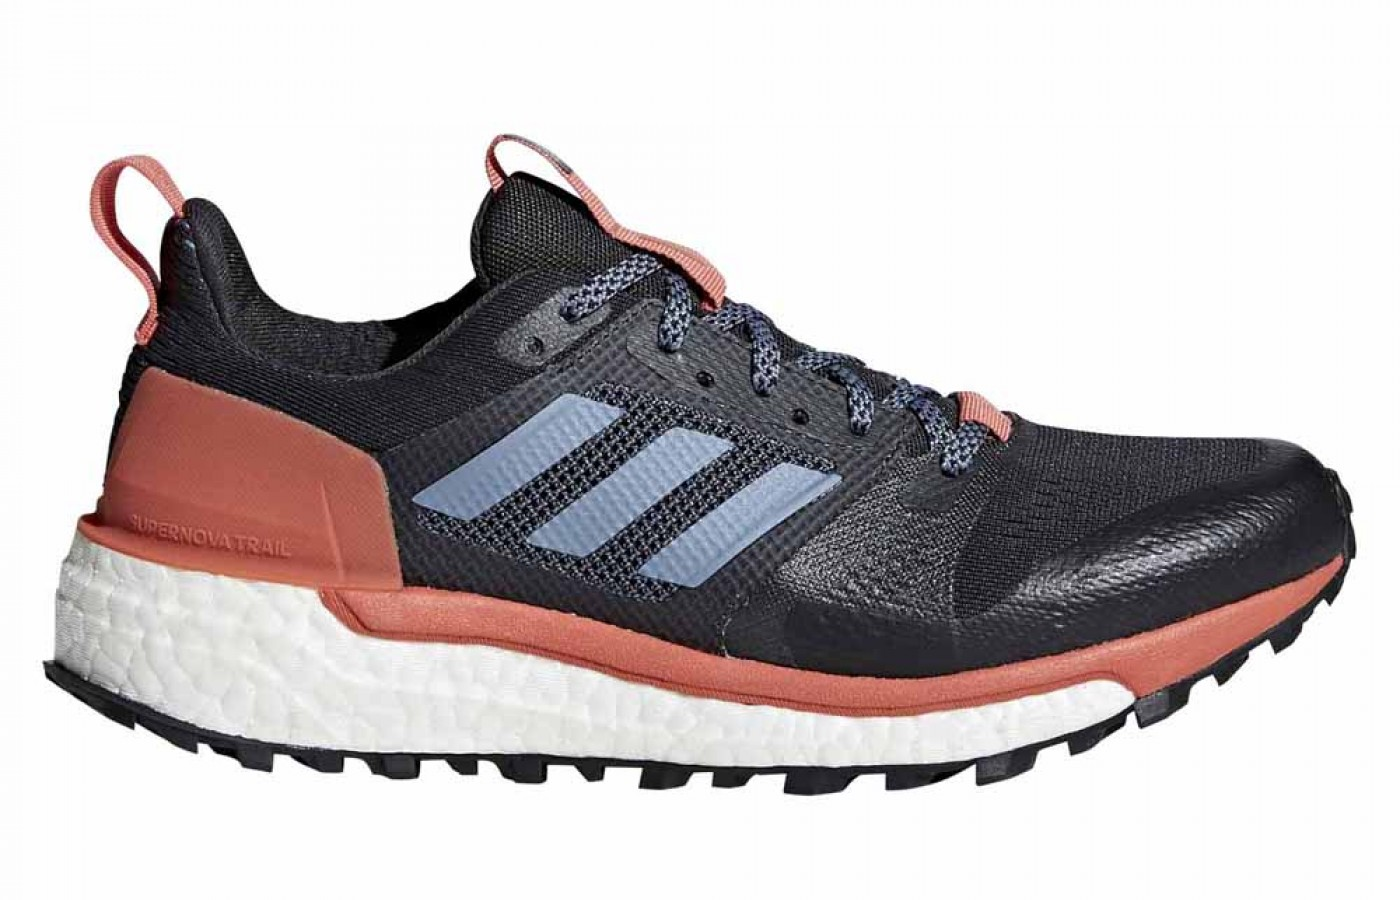 Adidas Supernova Trail left to right